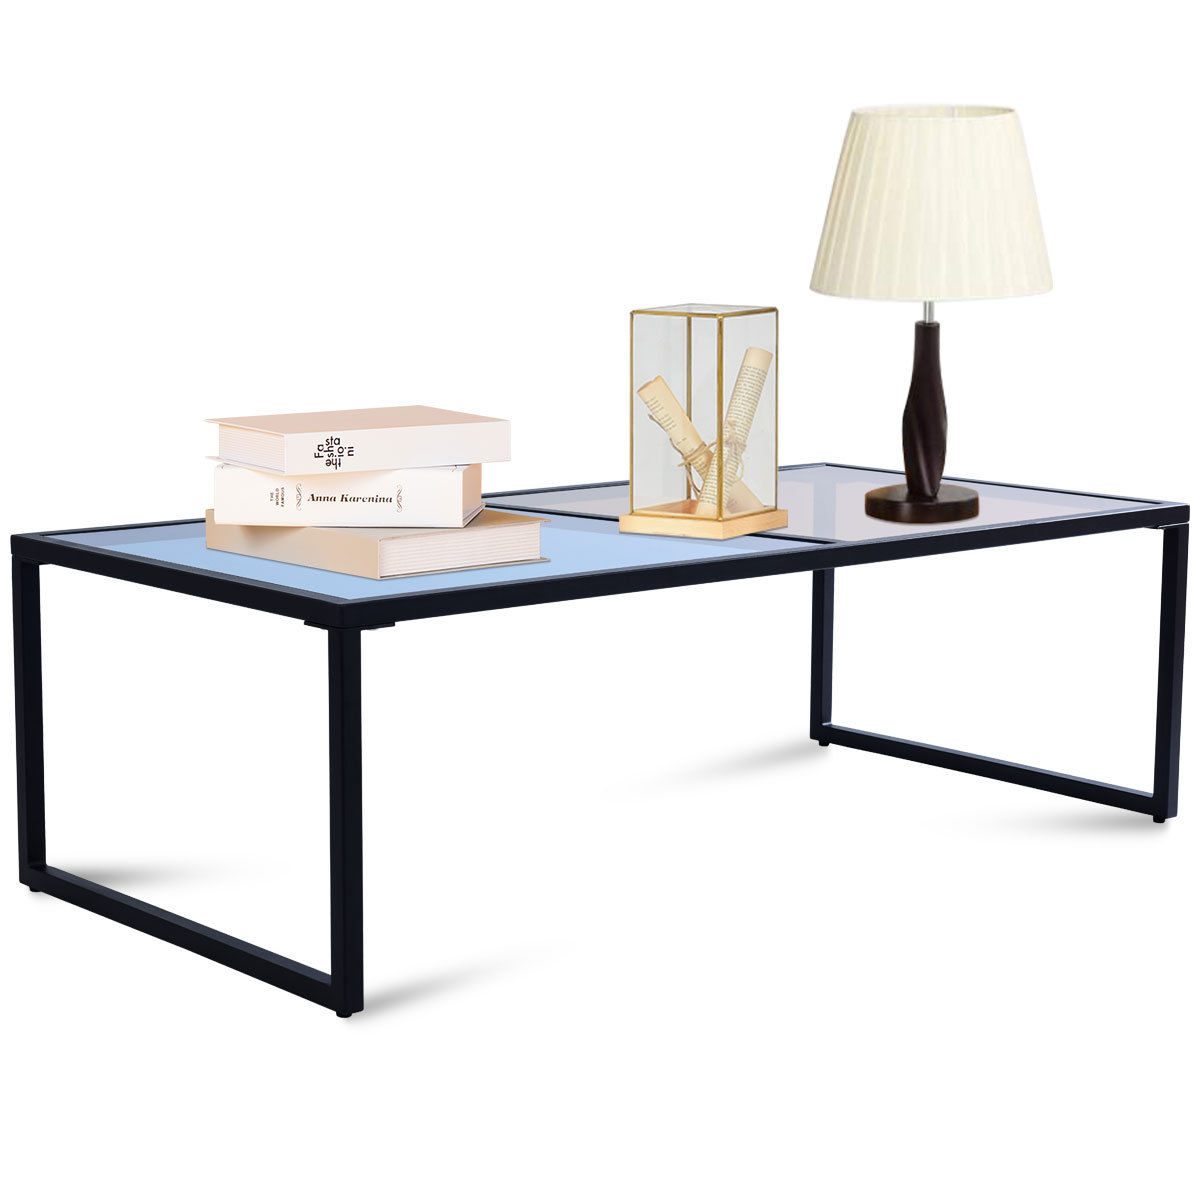 Costway Rectangular Coffee Table Tempered Glass Top Metal Frame Living Room Furniture Aliexpress